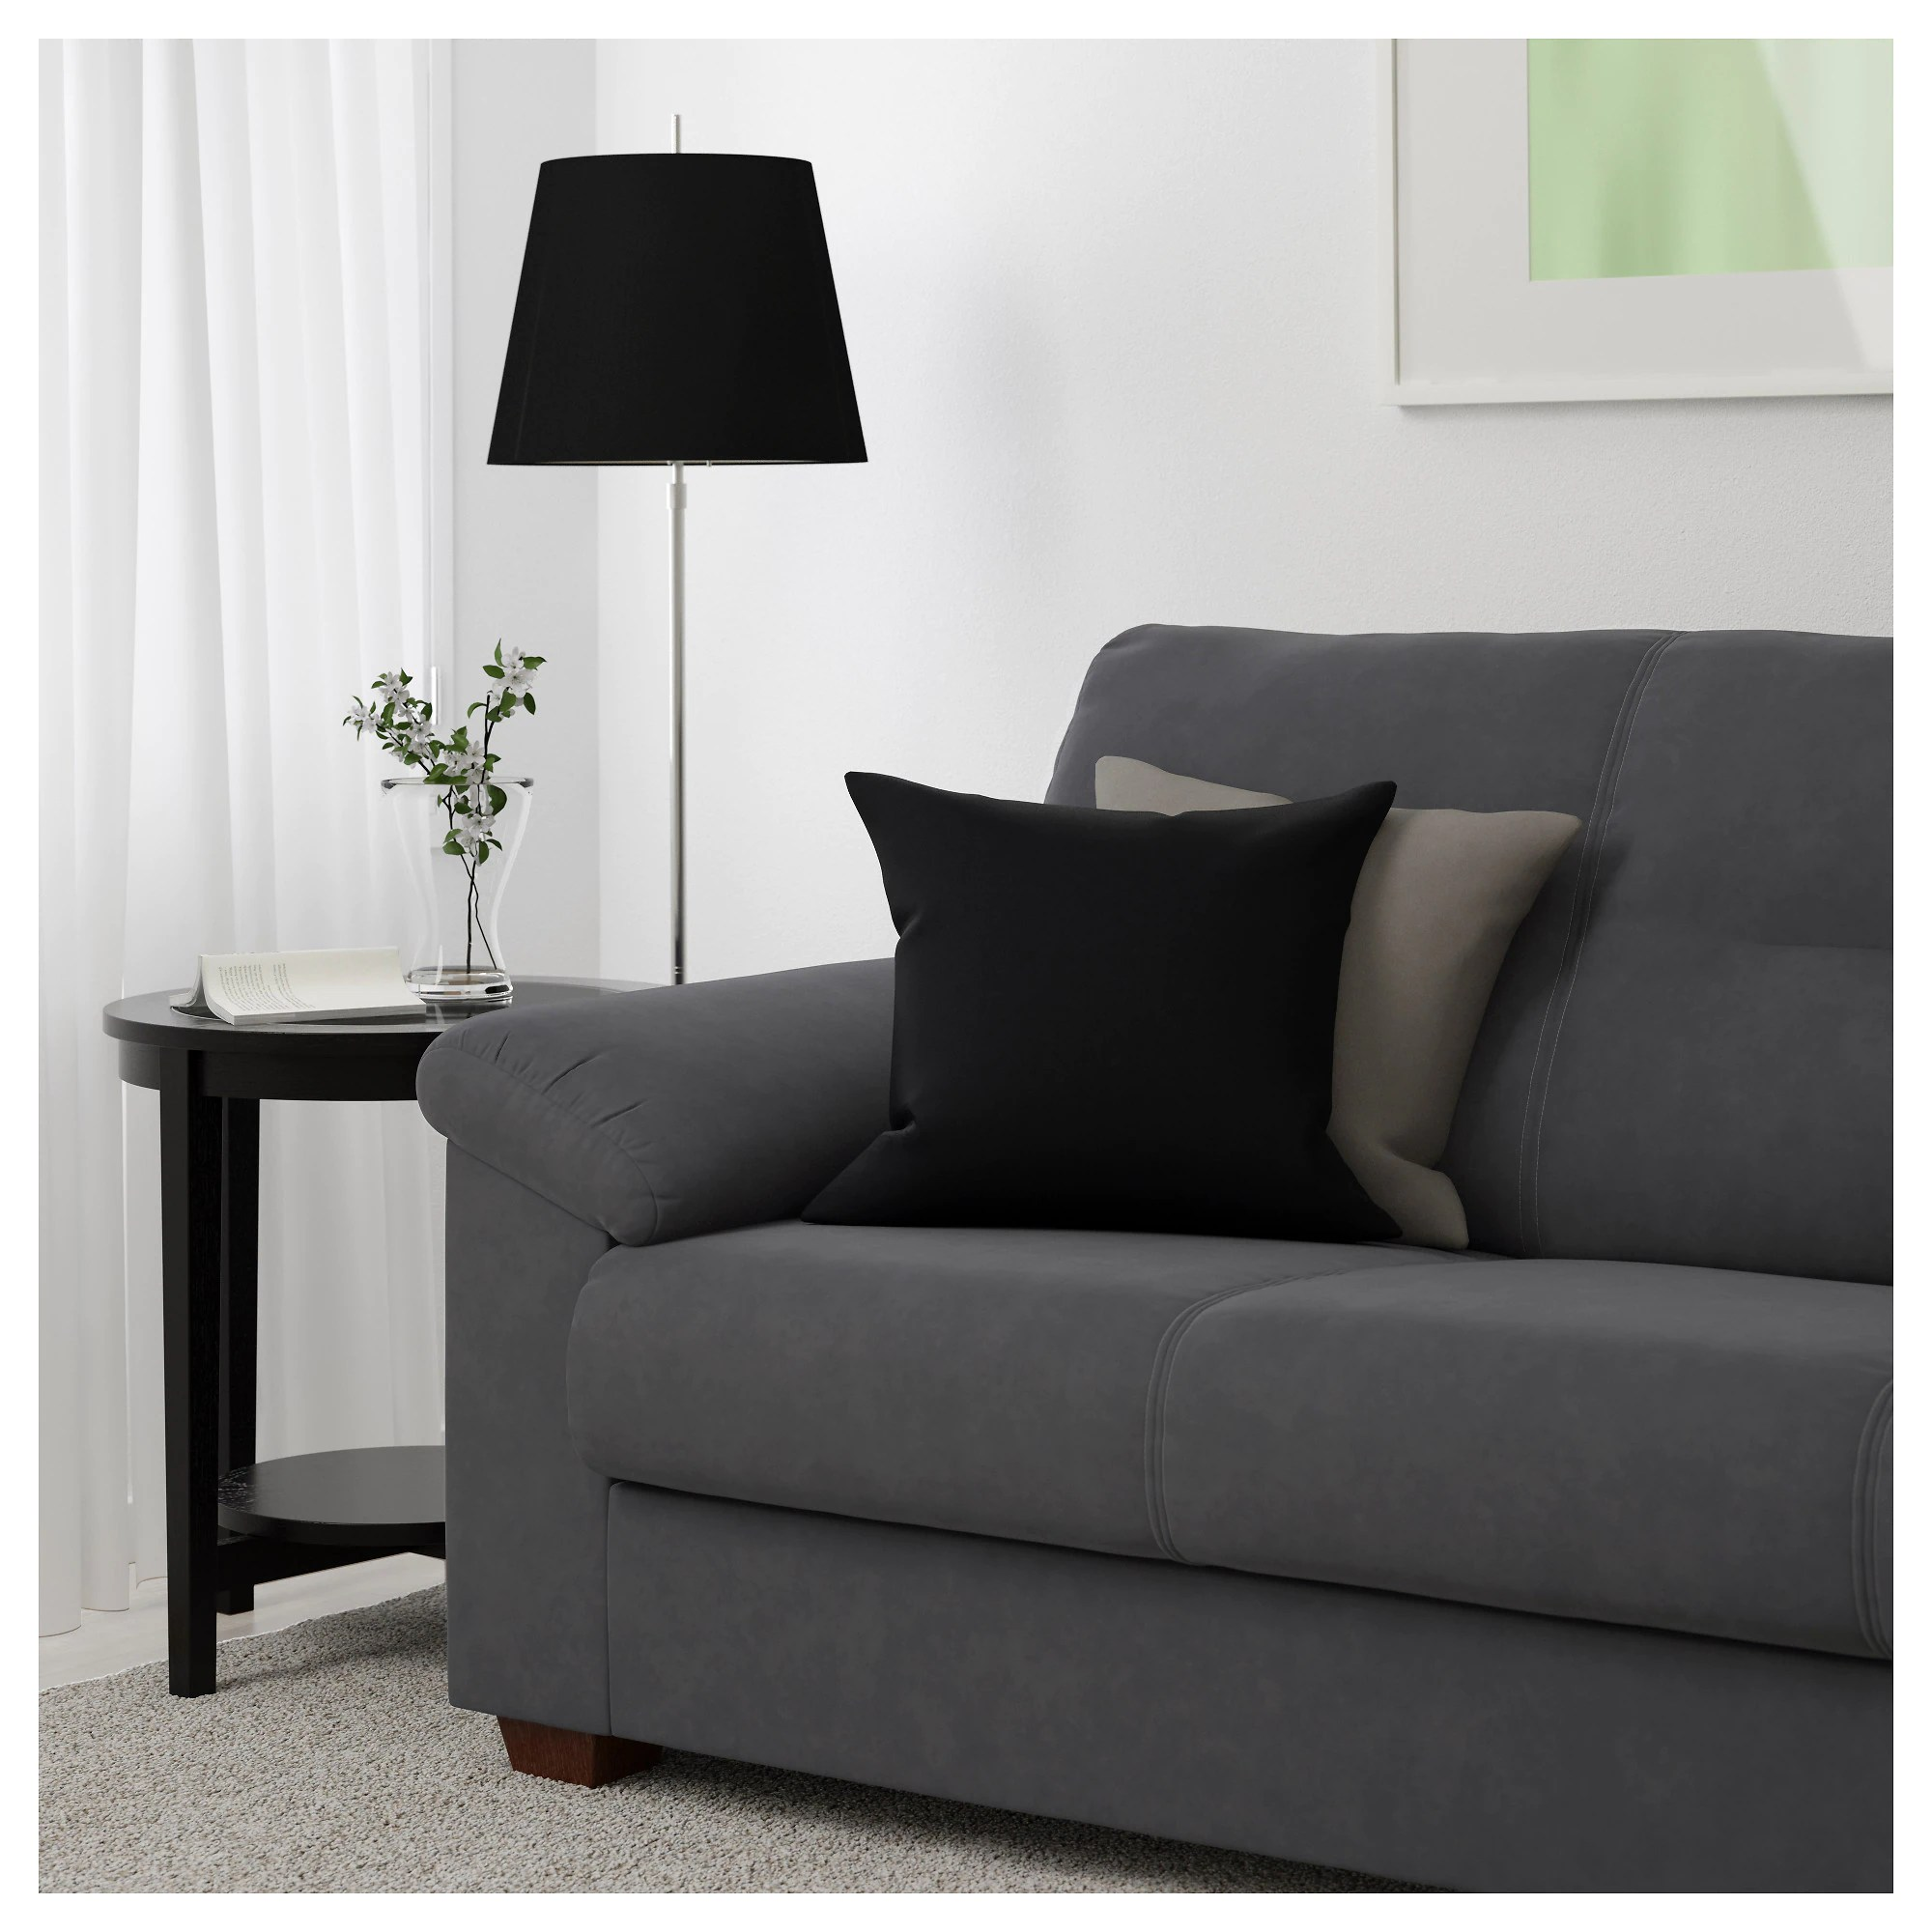 Sofa Repair Charlotte Nc Knislinge Sofa Samsta Dark Brown